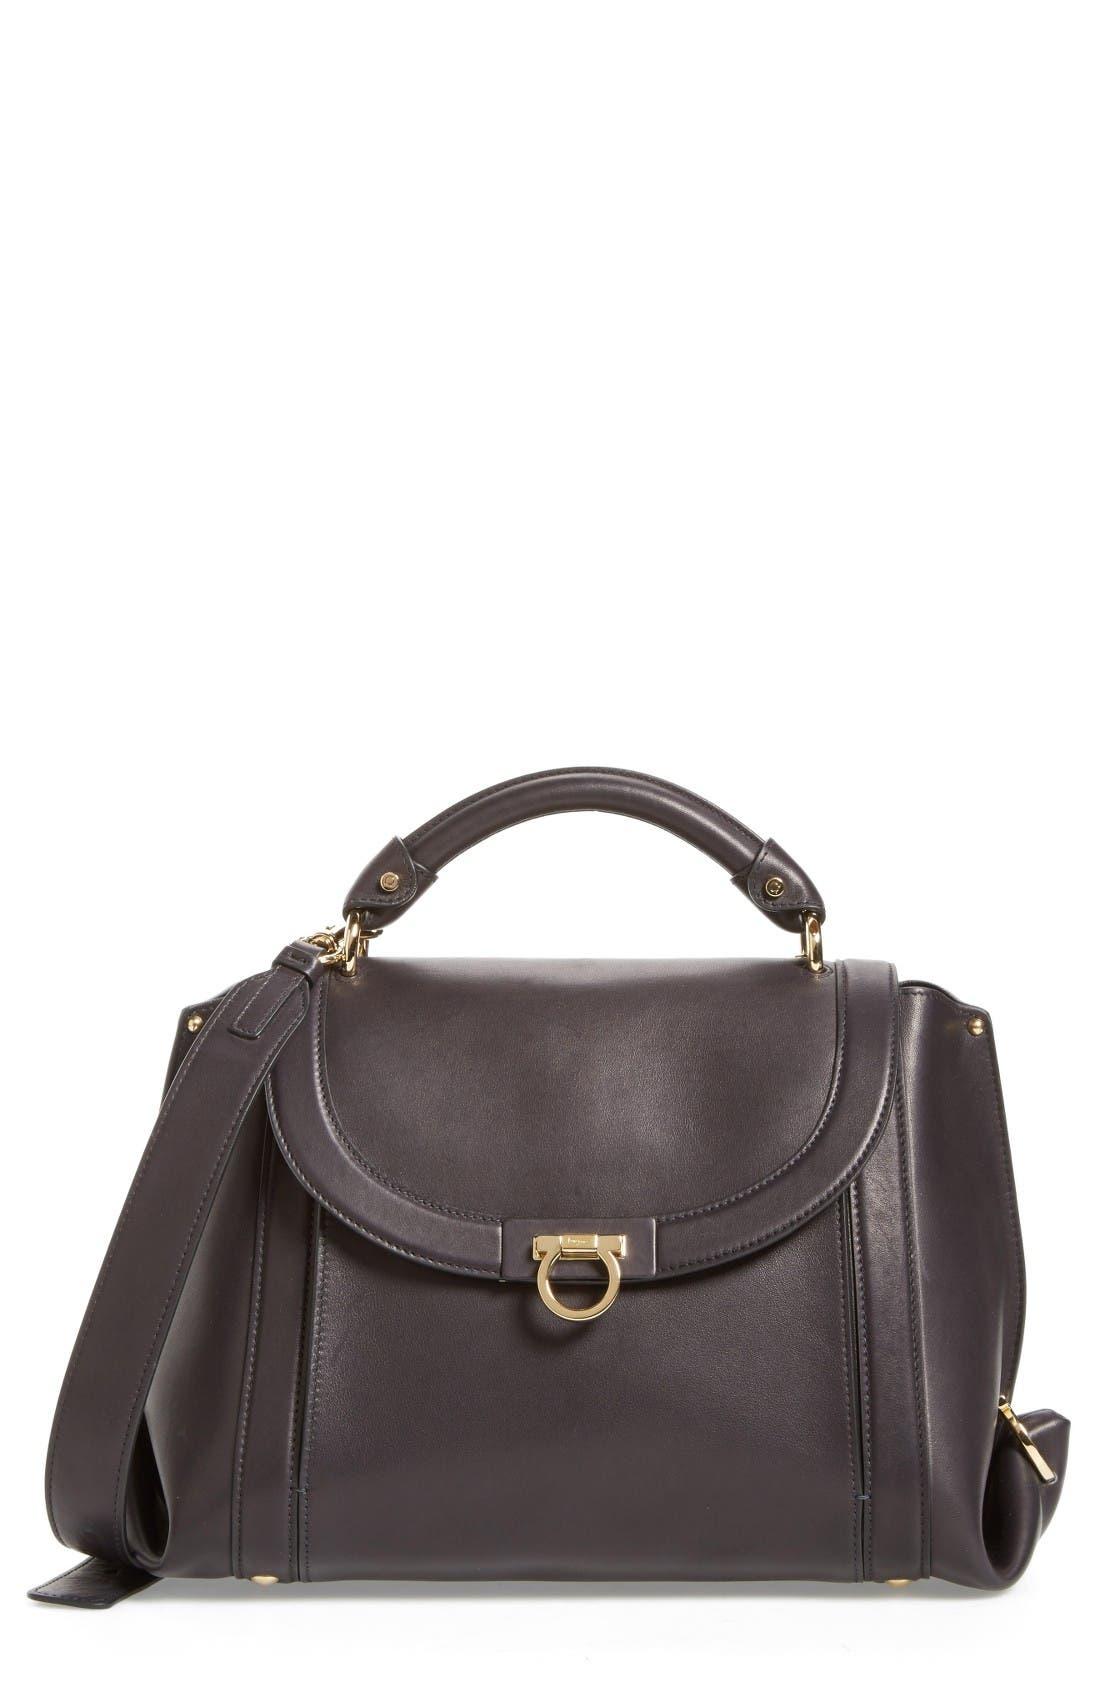 Main Image - Salvatore Ferragamo Medium Leather Satchel